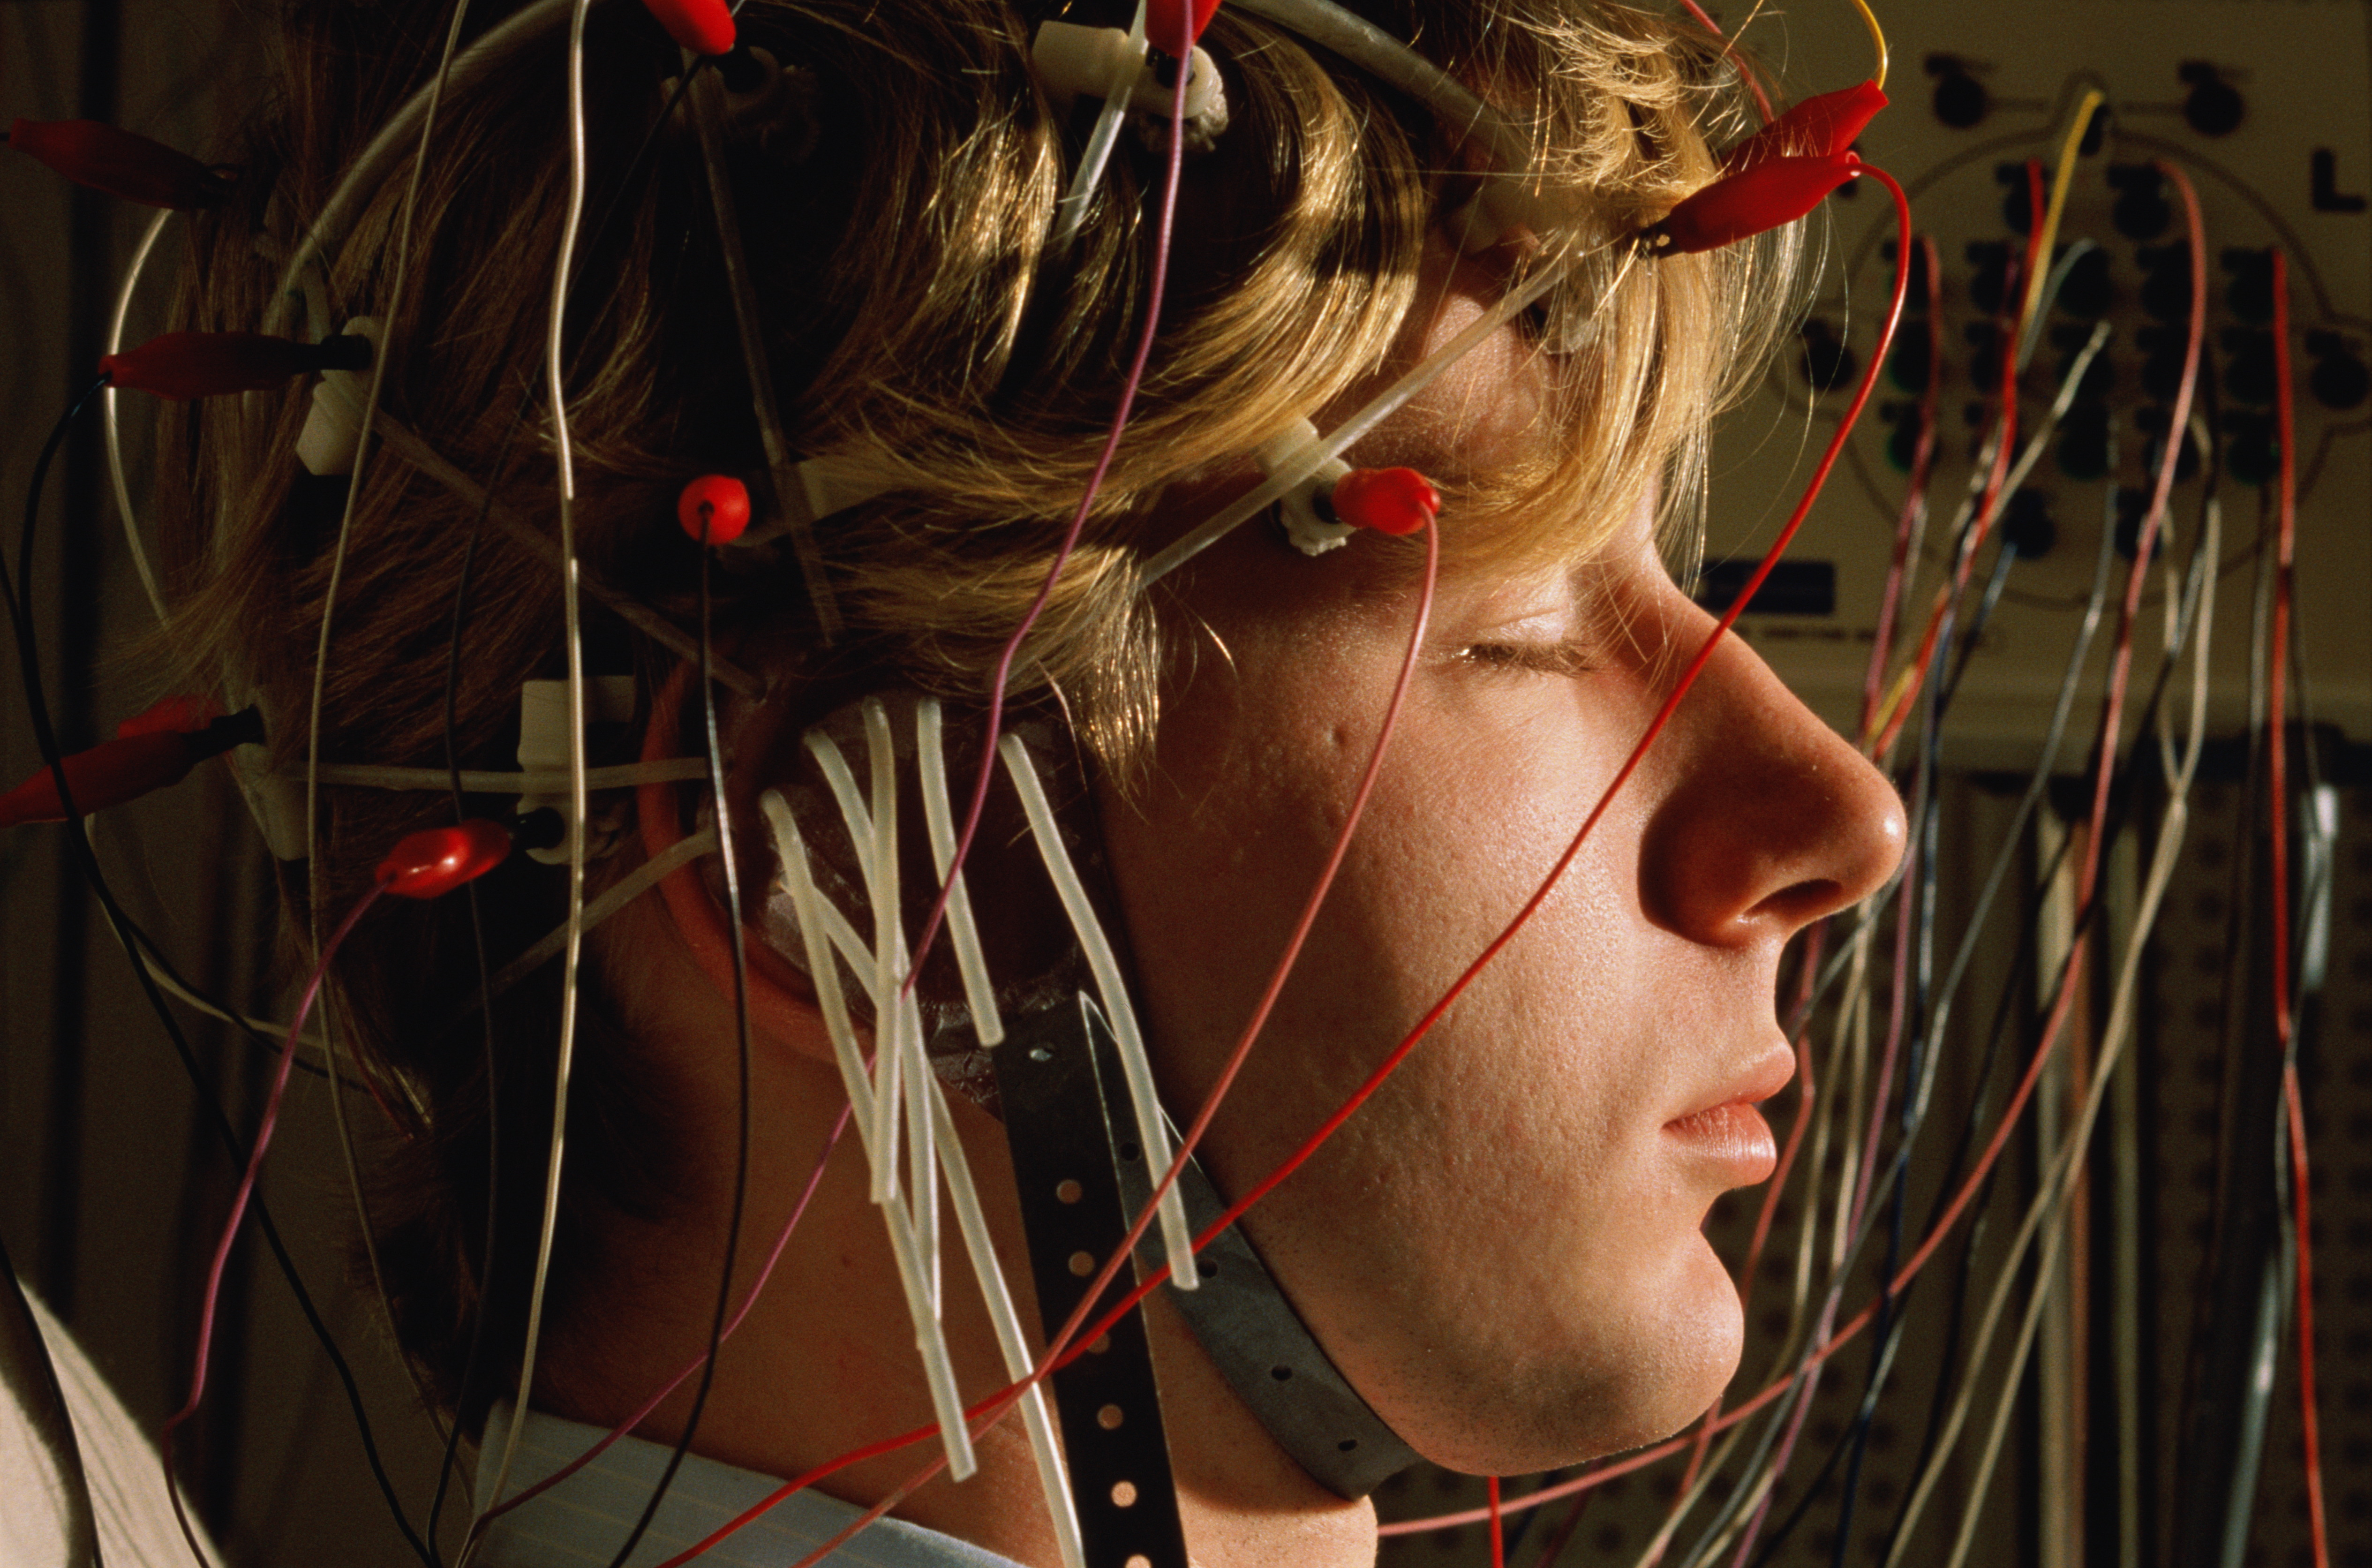 Pharmaceutical research, electrical activity of brain monitored by EEG